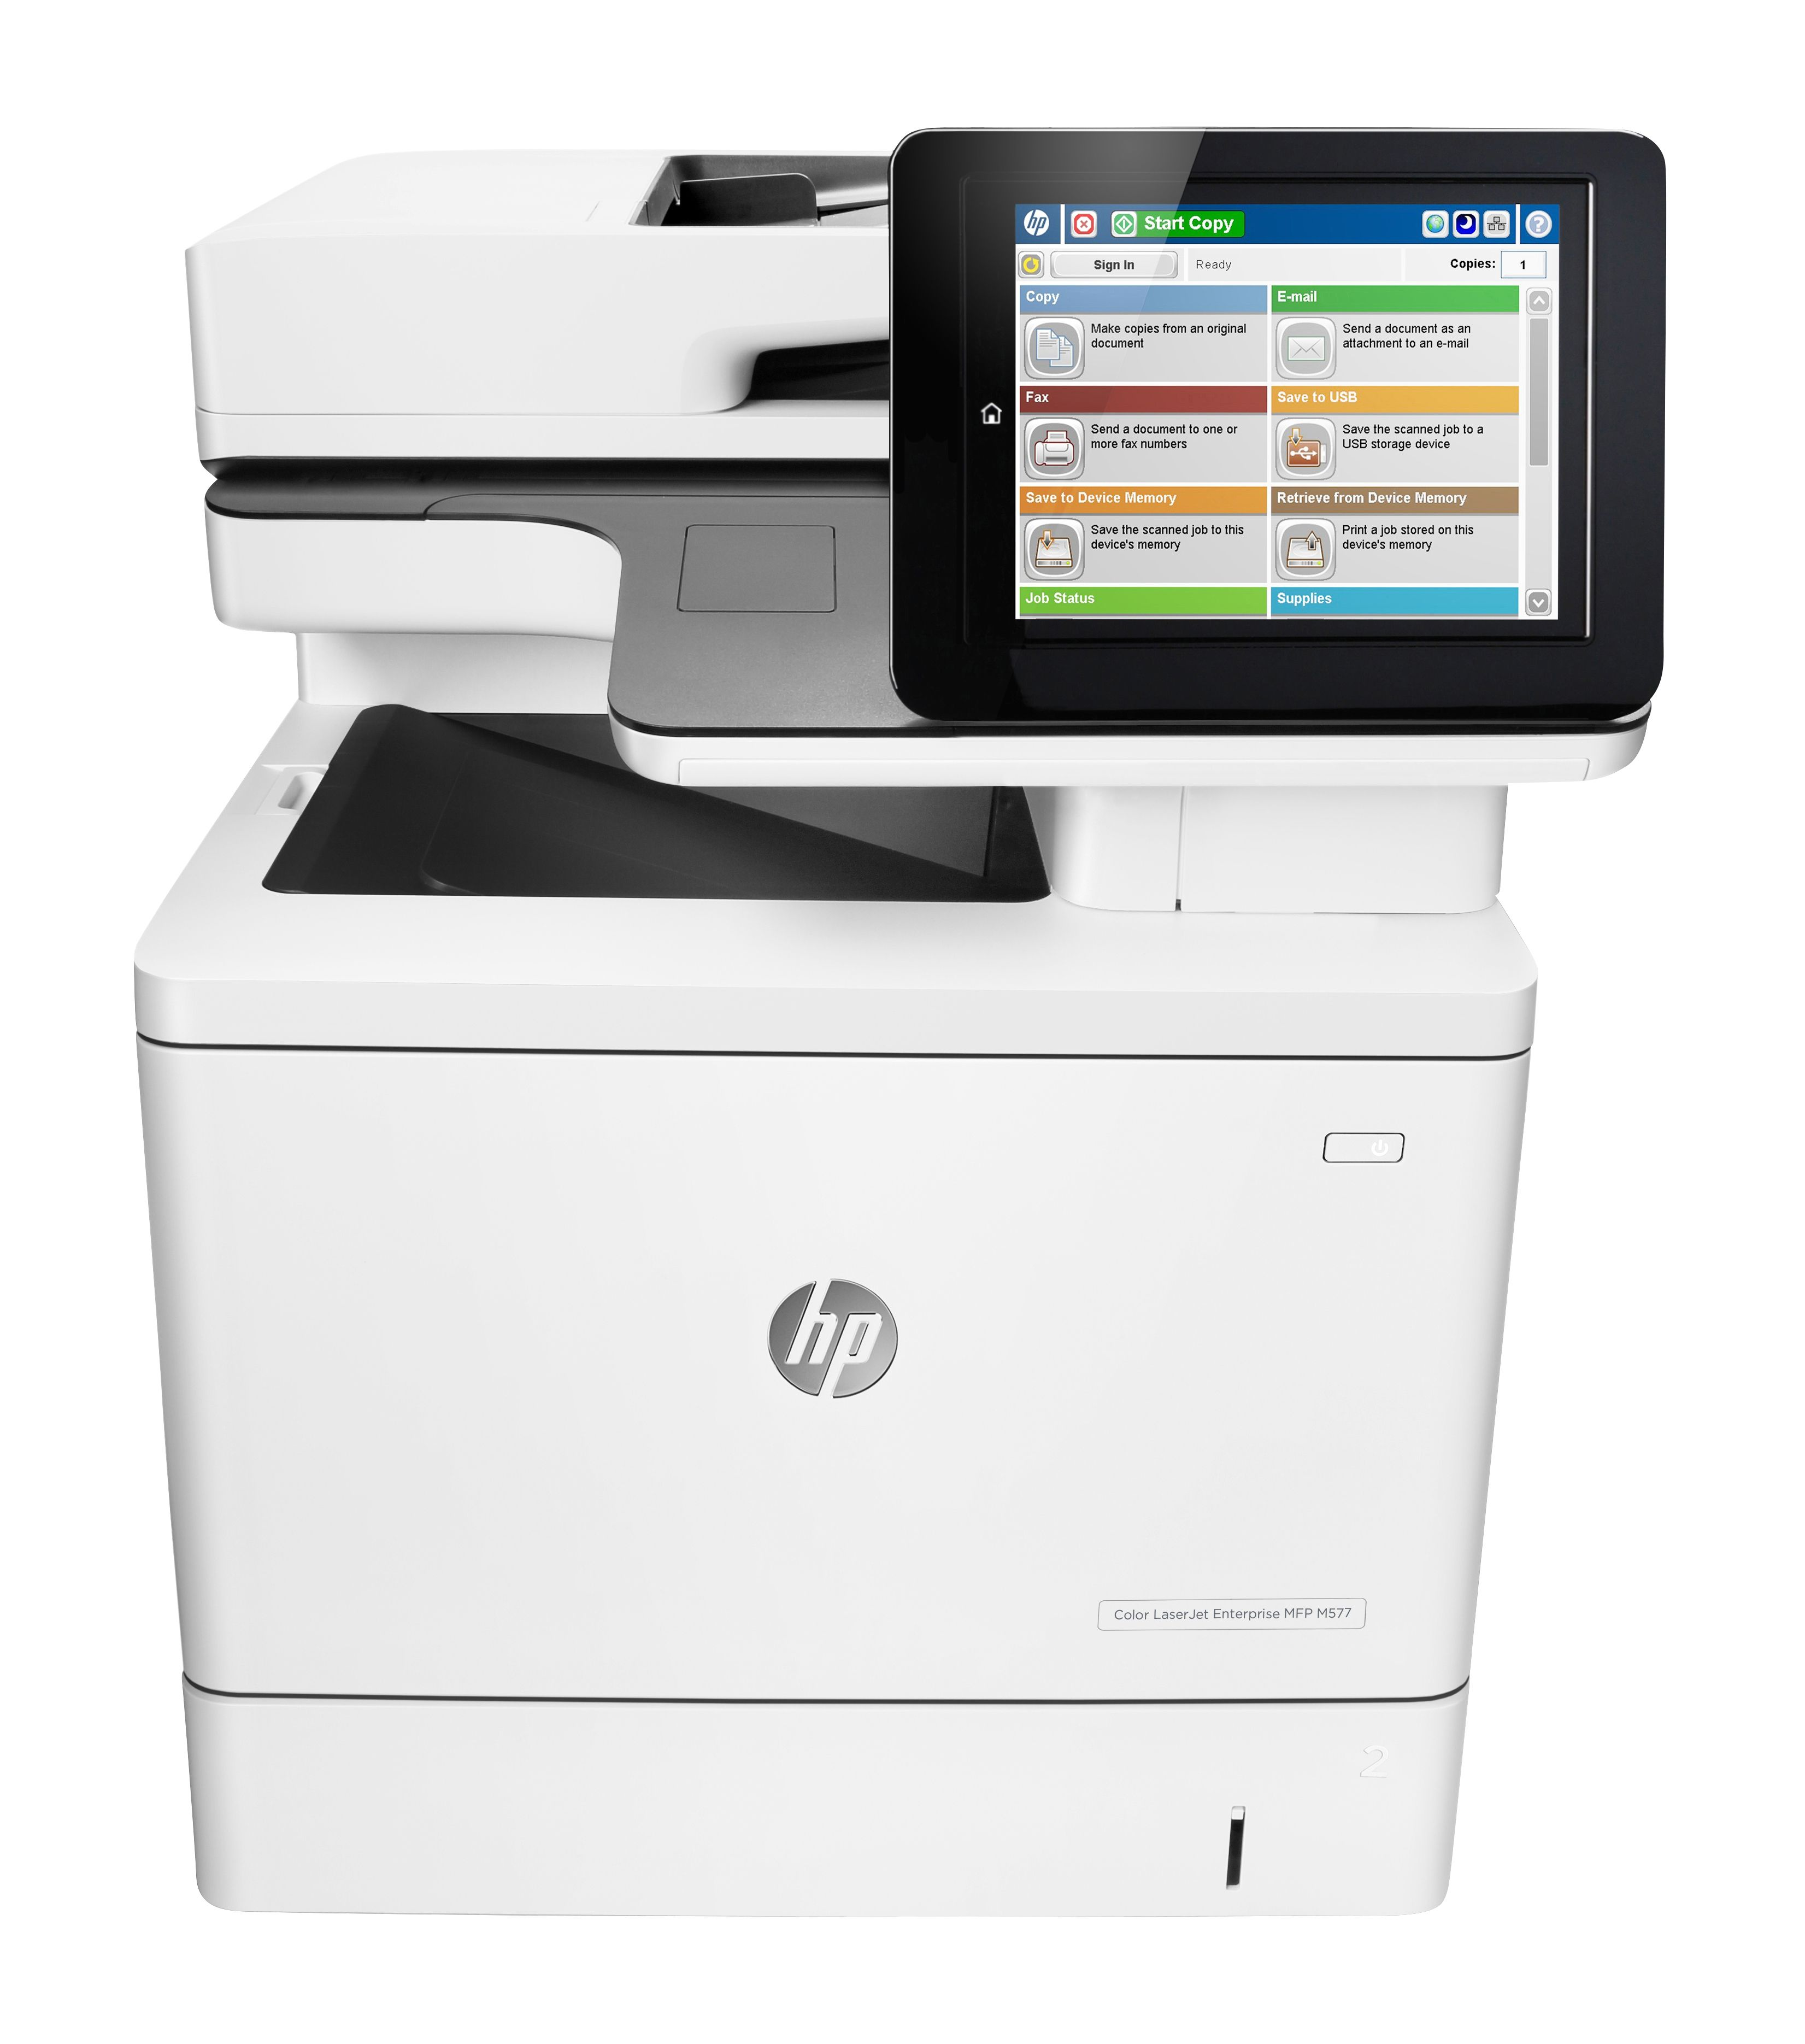 B5l46a Hp Colour Laserjet Enterprise Mfp M577dn M577 Multifunction A4 Printer In 2020 Refurbished Computers Linux Operating System Printer